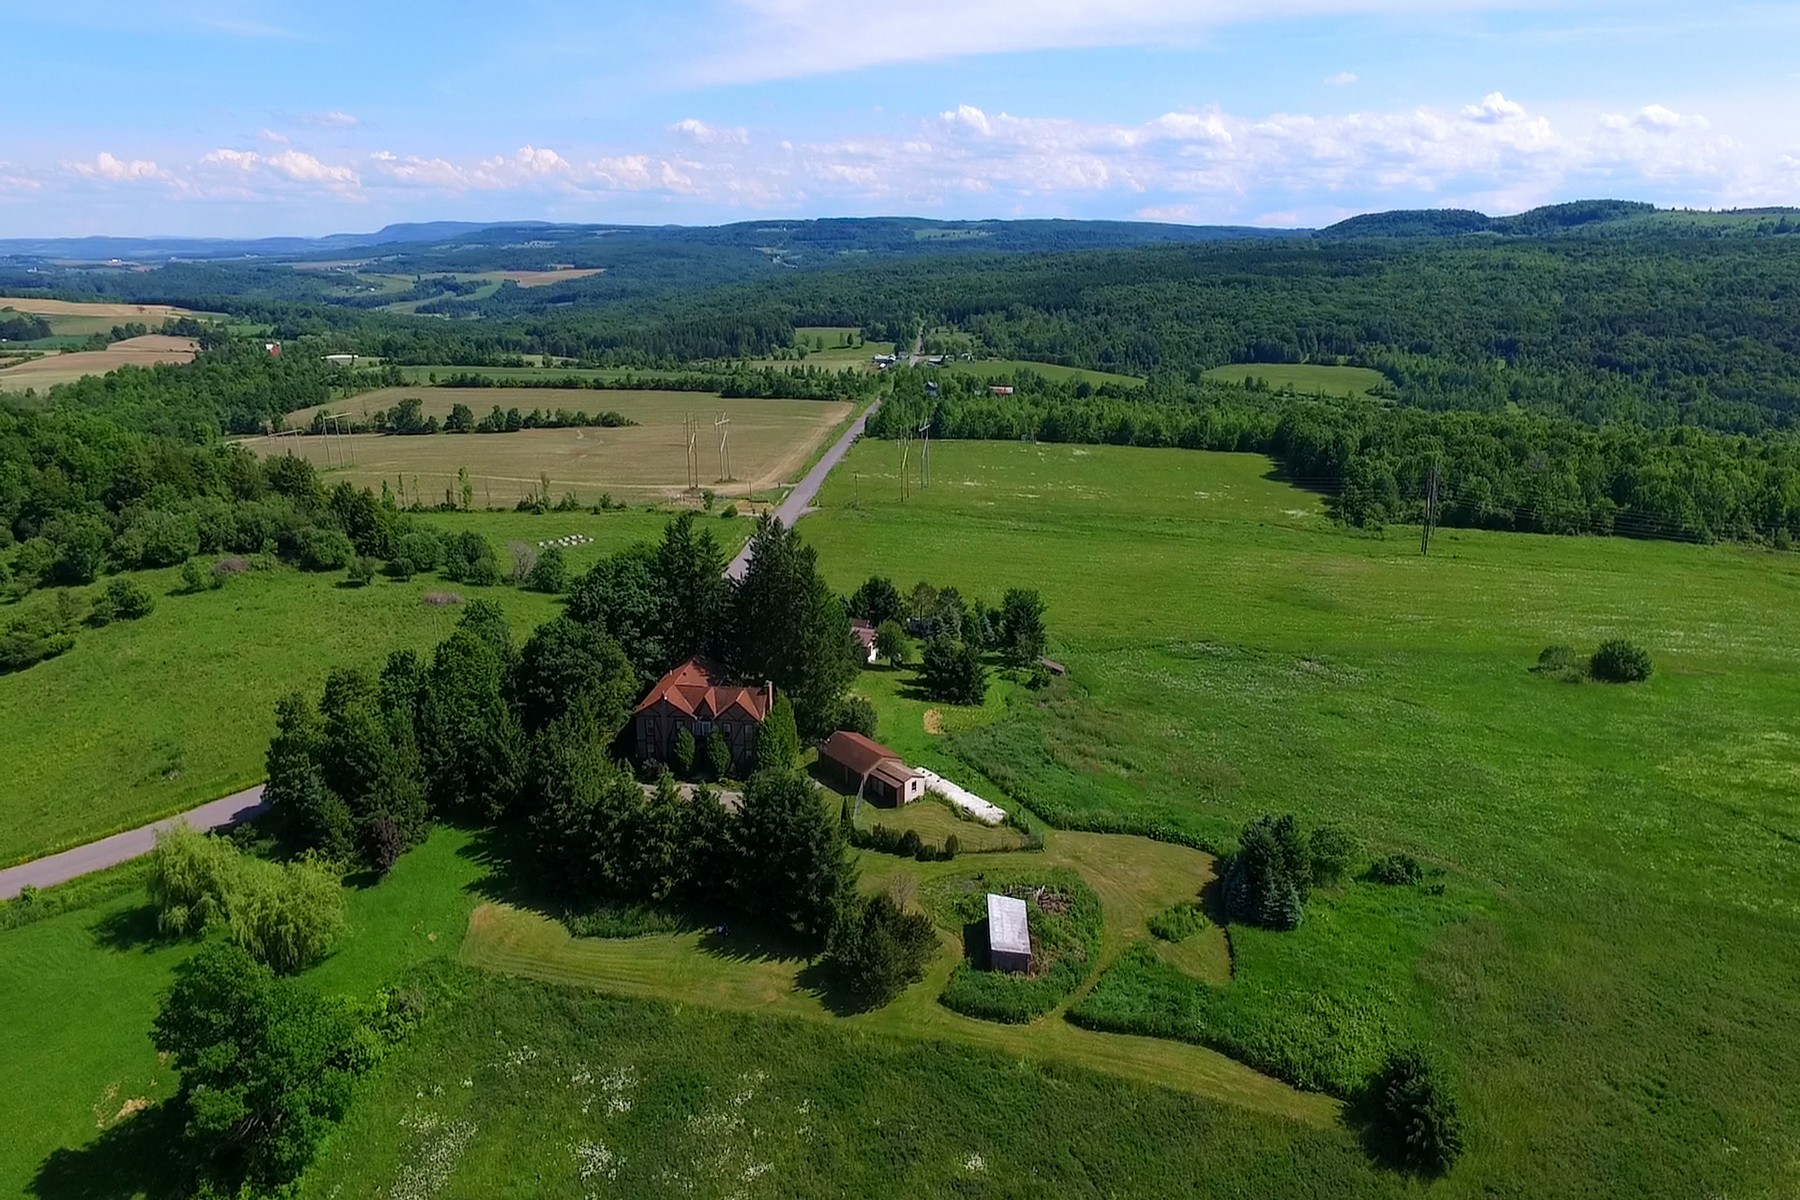 Single Family Home for Sale at Beautiful Manor Home 295 Fiery Hill Rd Fort Plain, New York 13339 United States